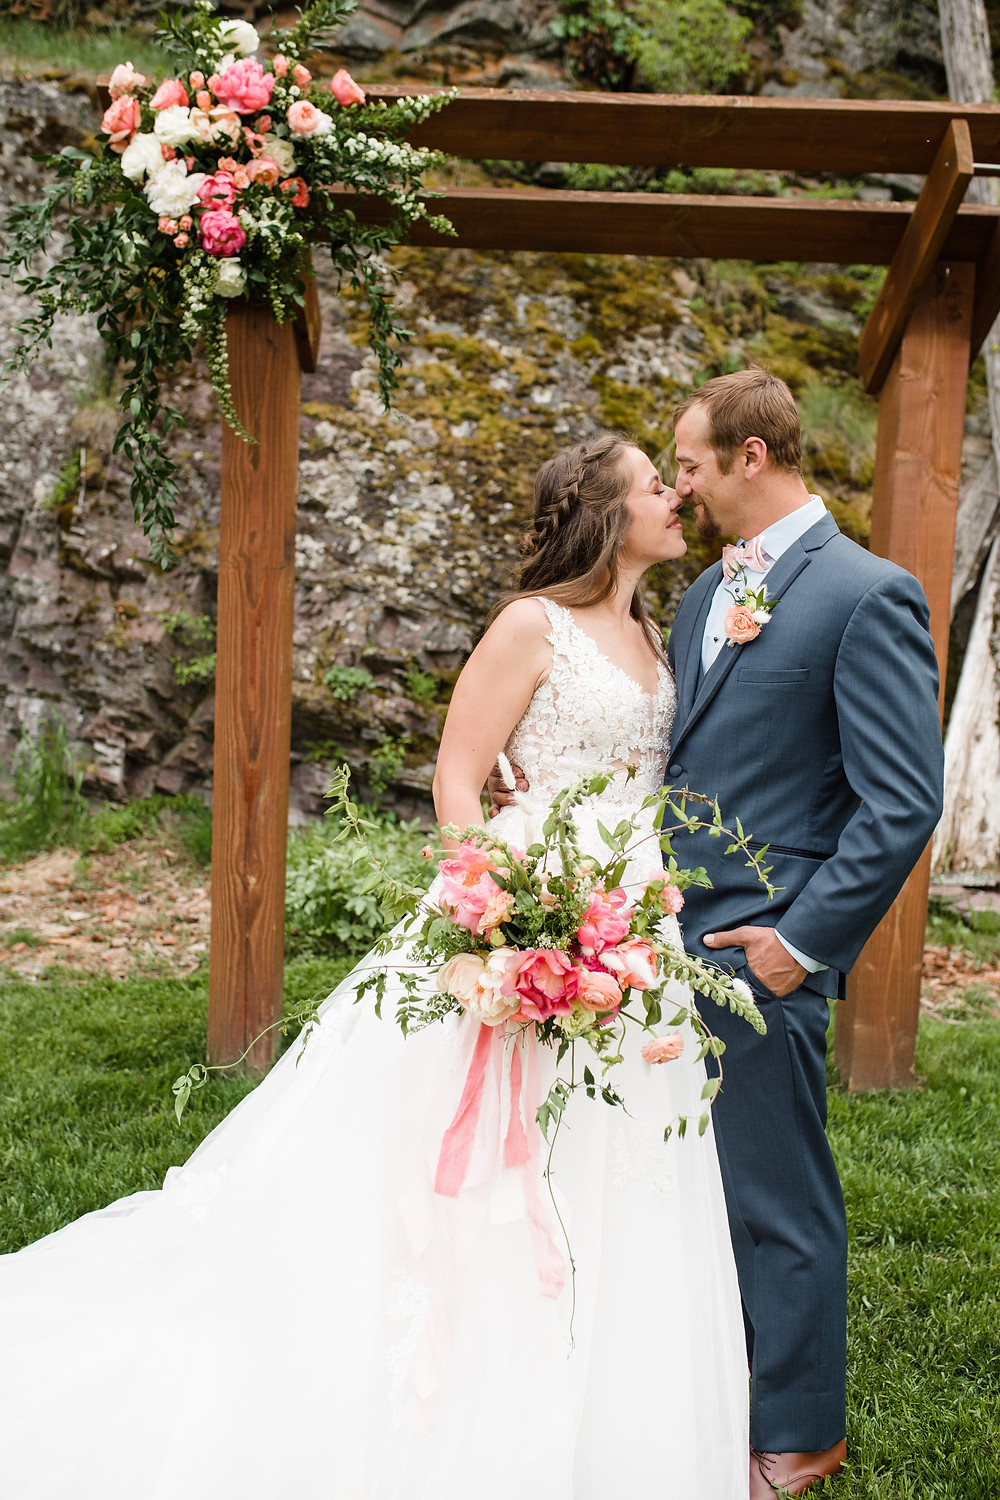 wedding photography tips for brides, first look vs. traditional wedding timeline